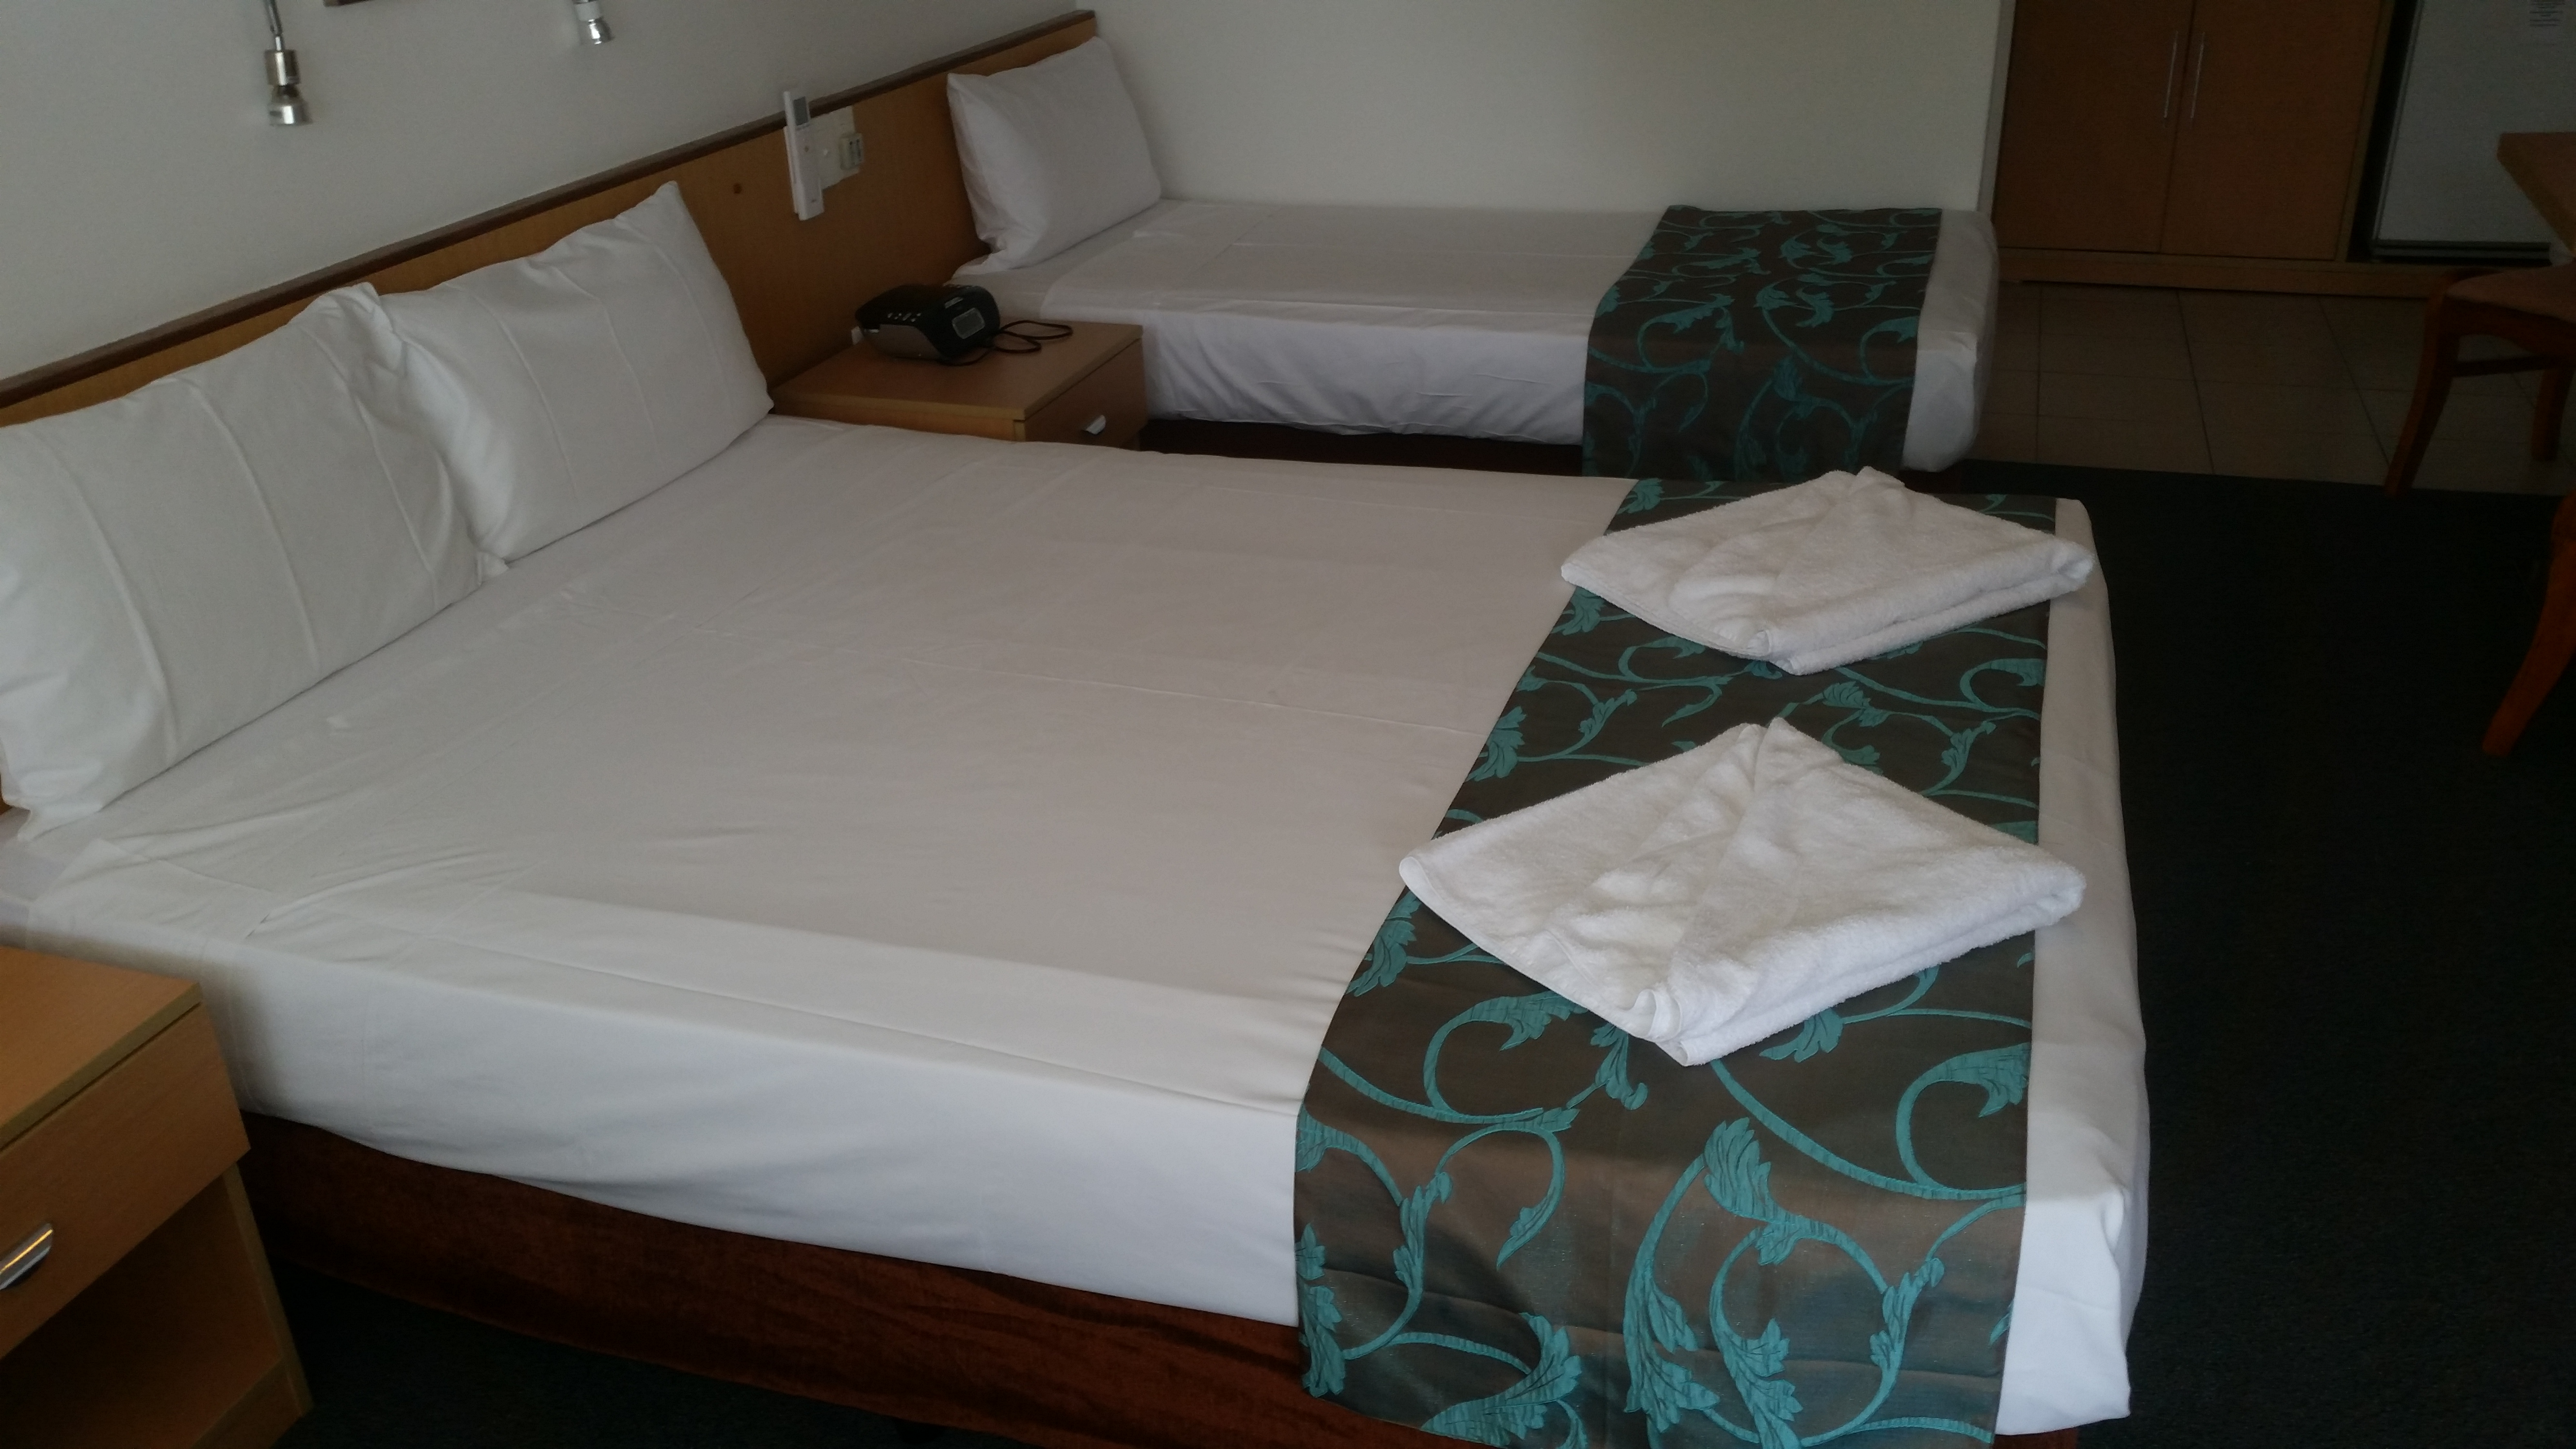 Comfortable and affordable accommodation at Annerley Motor Inn